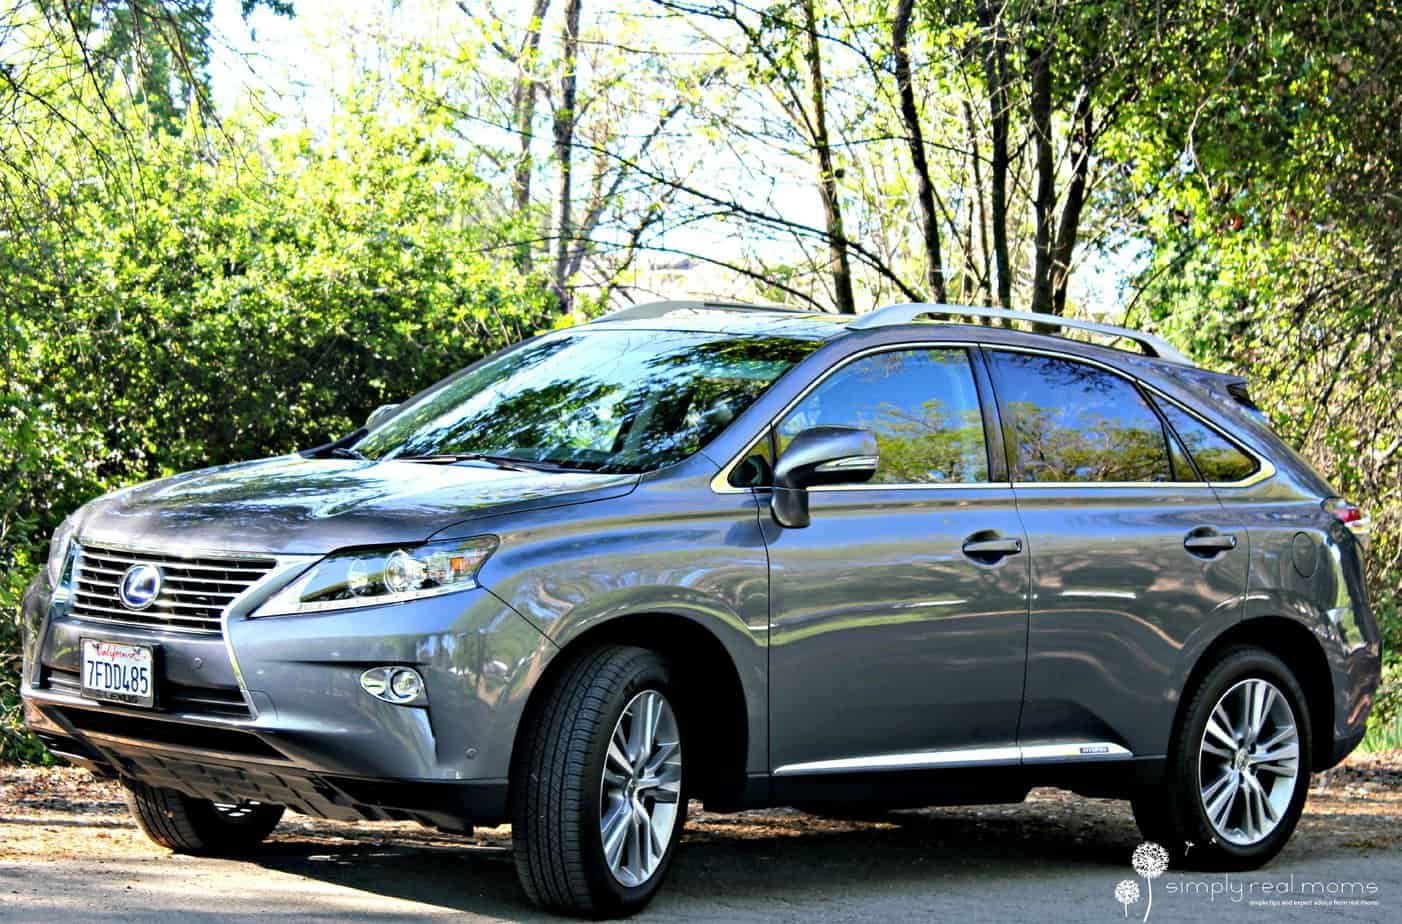 2015 Lexus RX 450H Not Your Average Hybrid Simply Real Moms